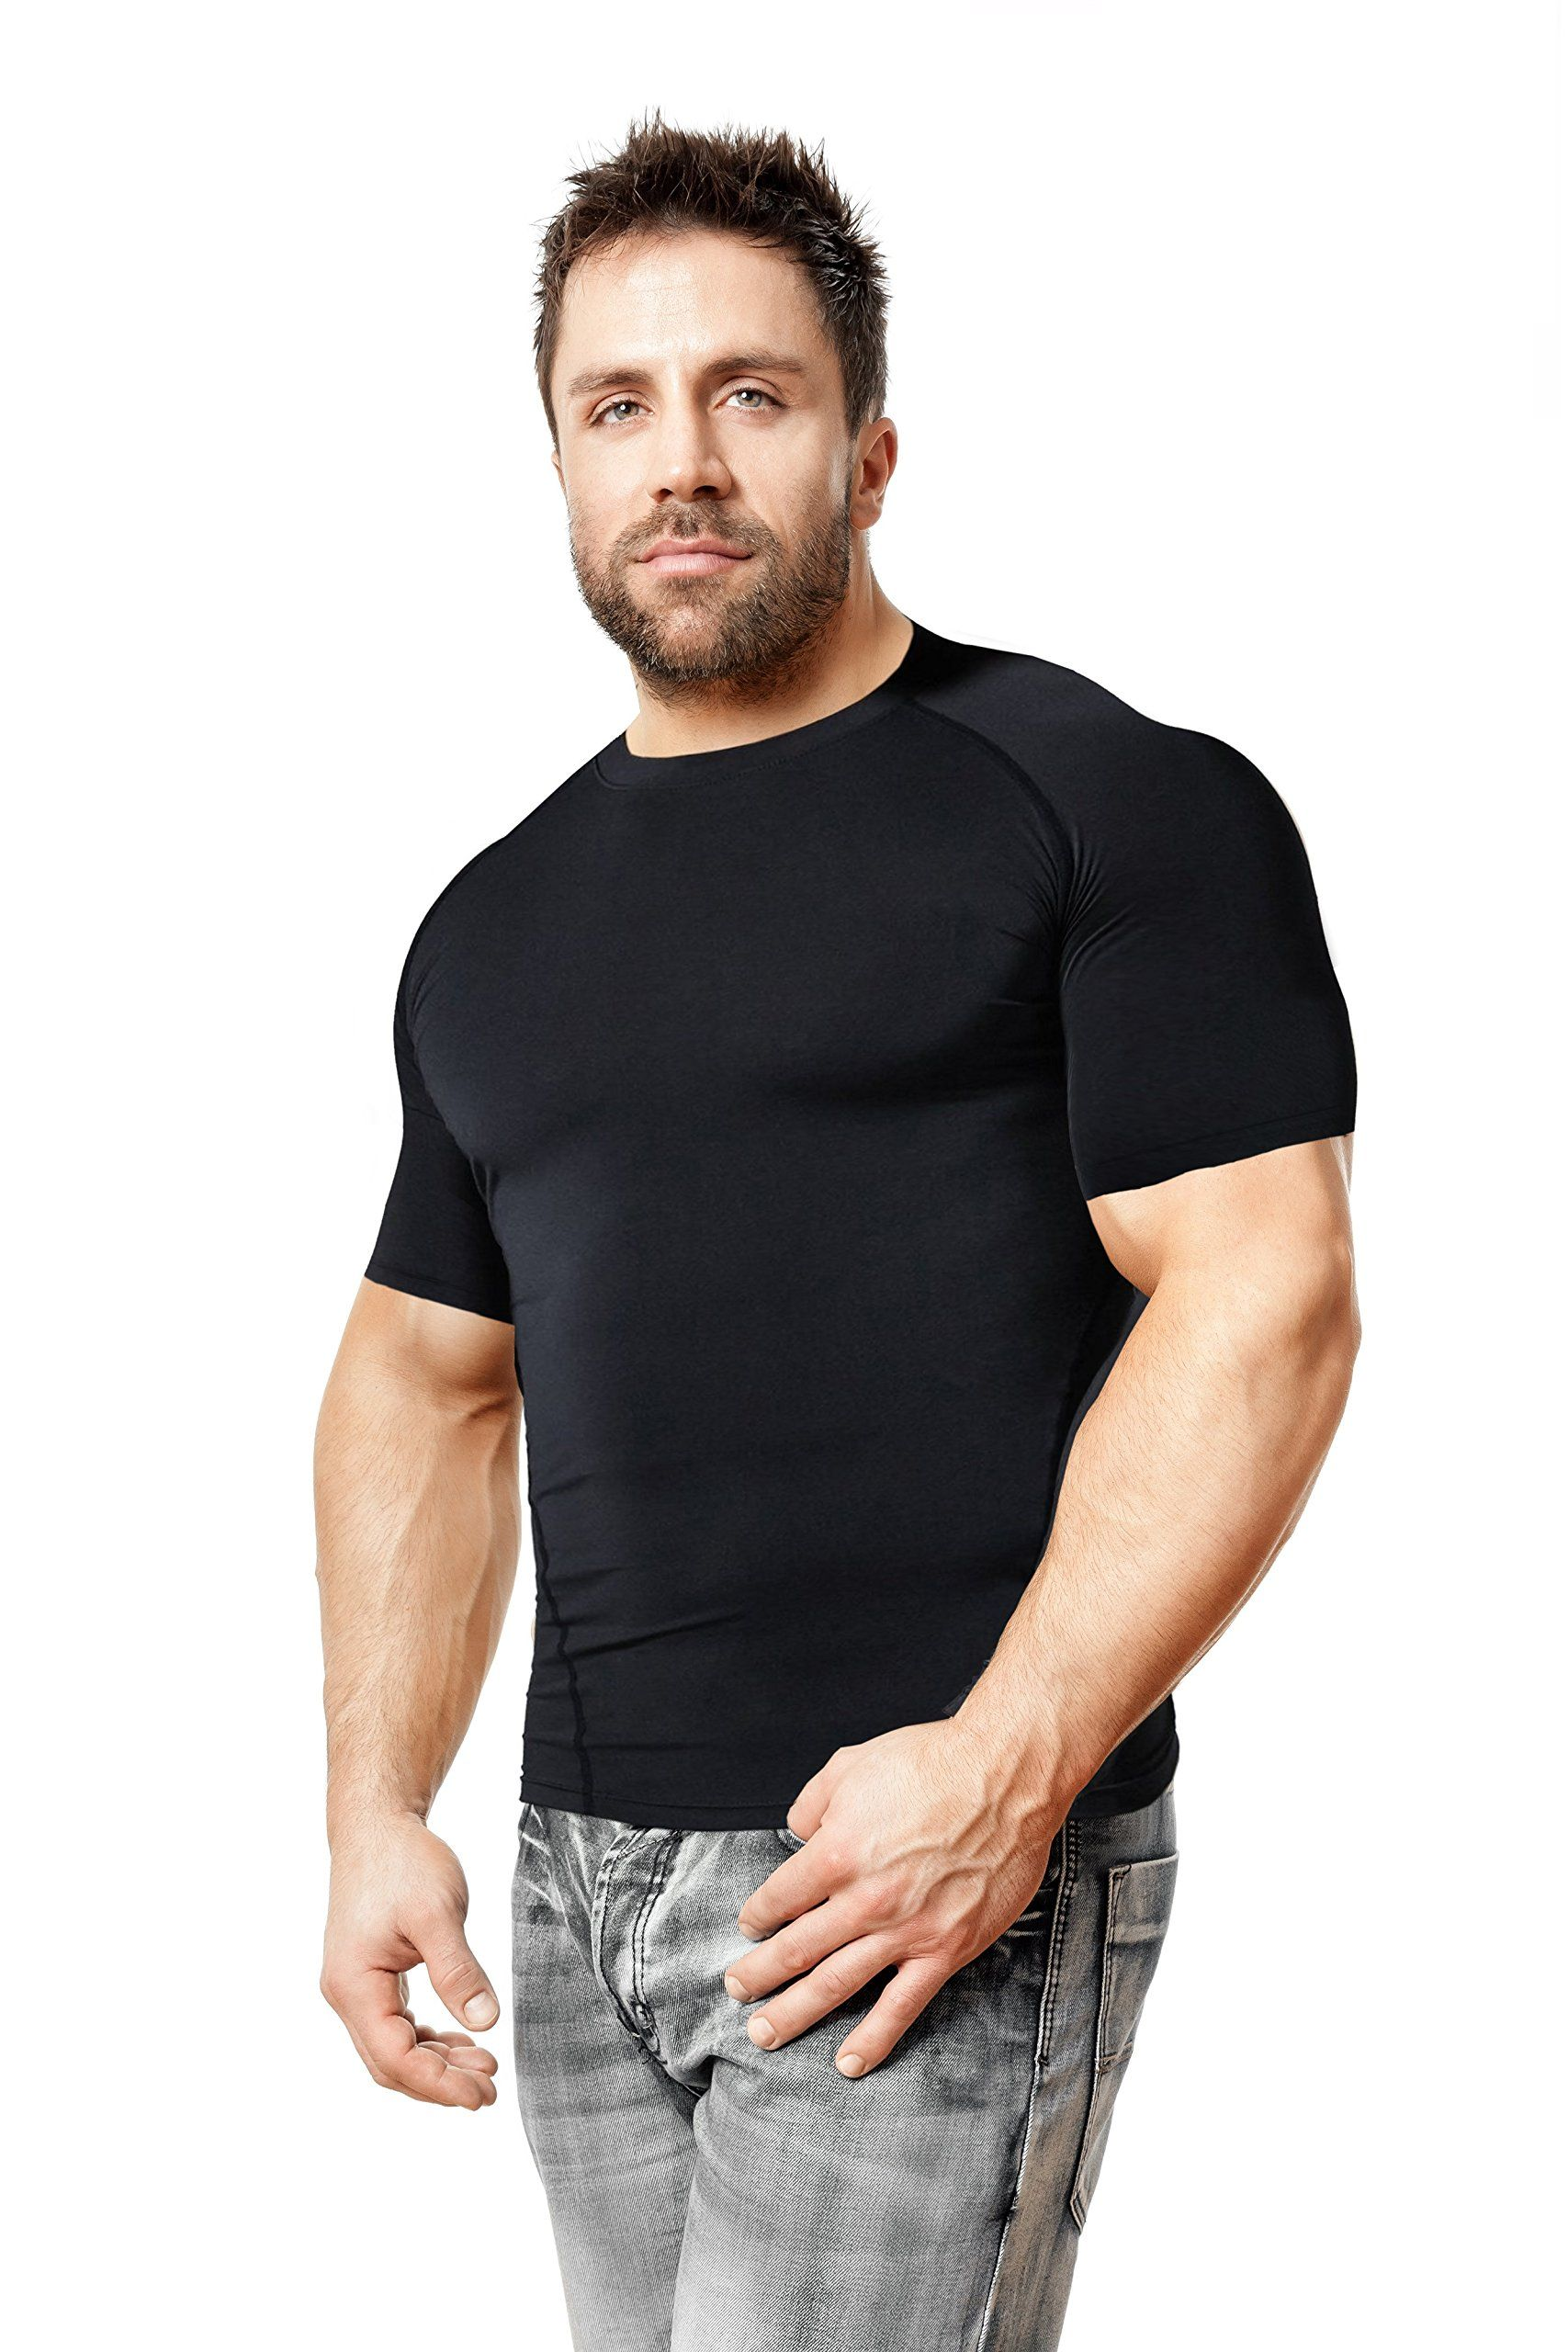 Copper compression short sleeve mens recovery t shirt